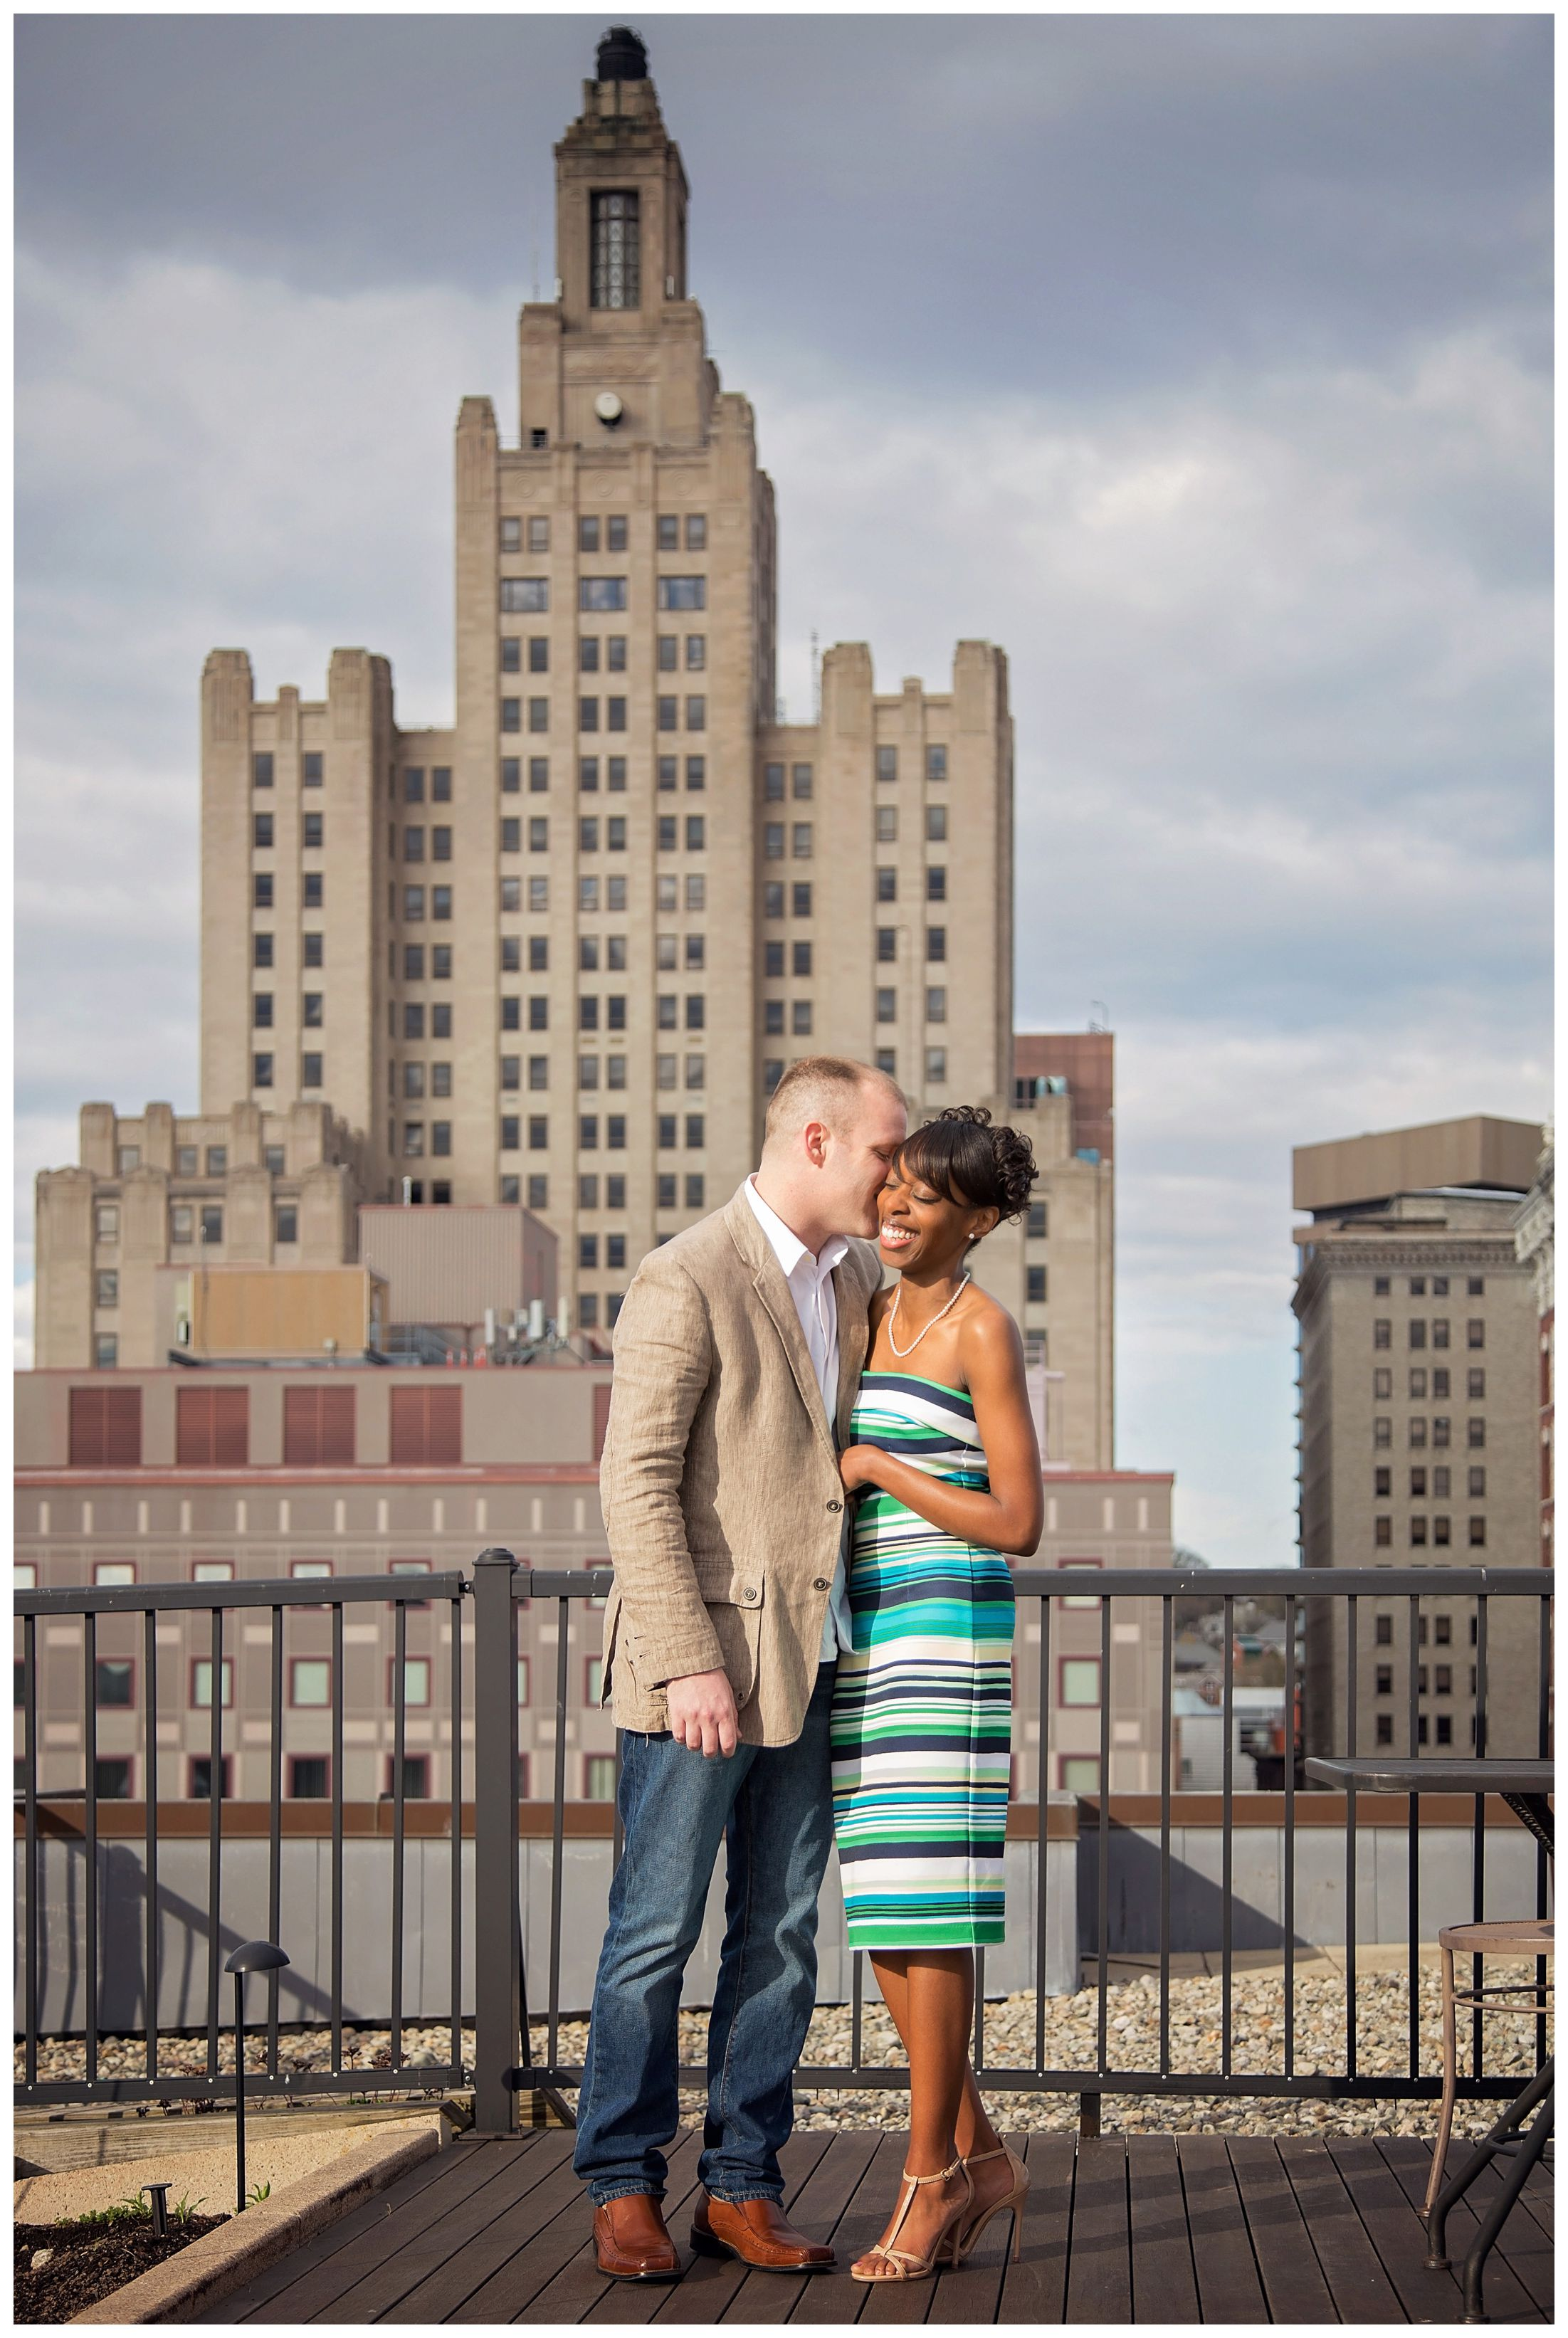 Wedding Photography Providence Ri: Downtown Providence, Rhode Island Engagement Session